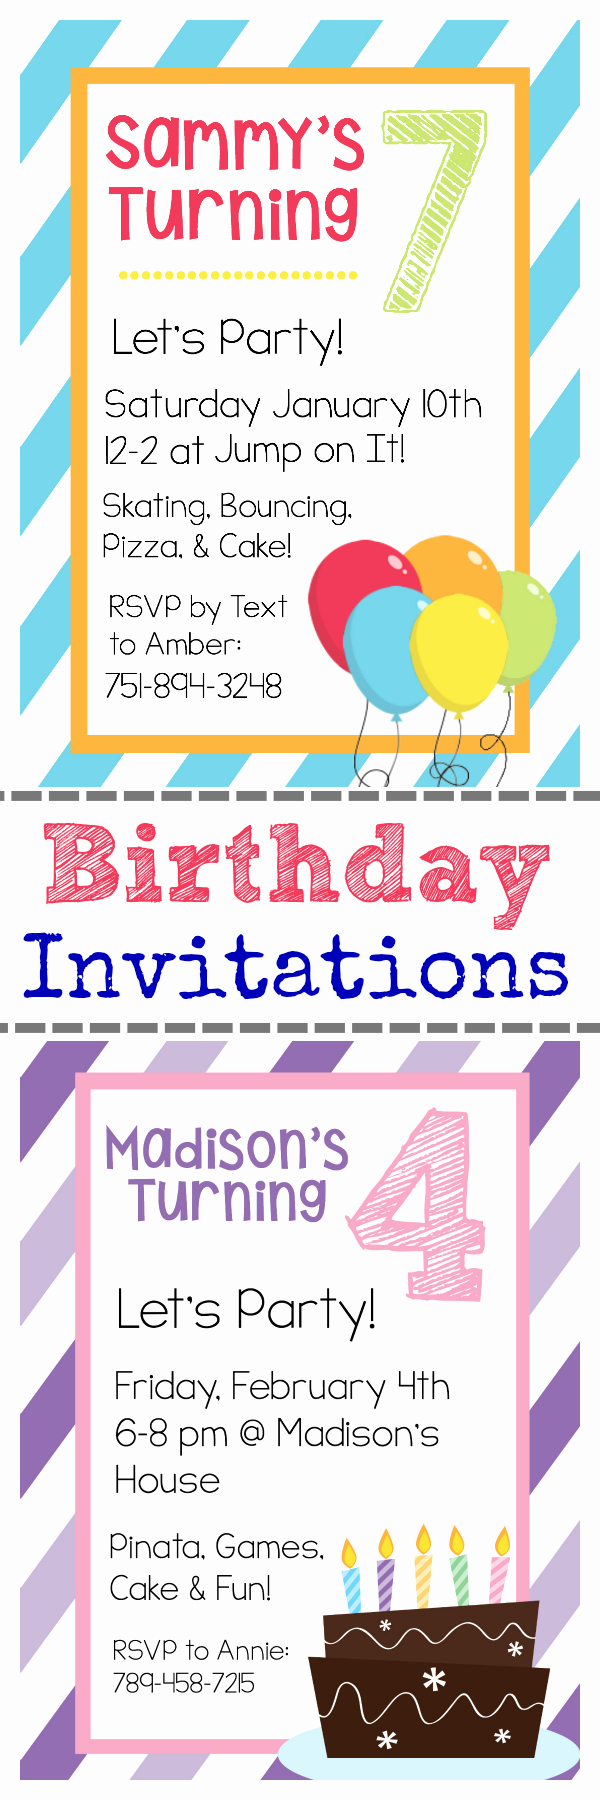 Party Invitation Template Printable Elegant Free Printable Birthday Invitation Templates